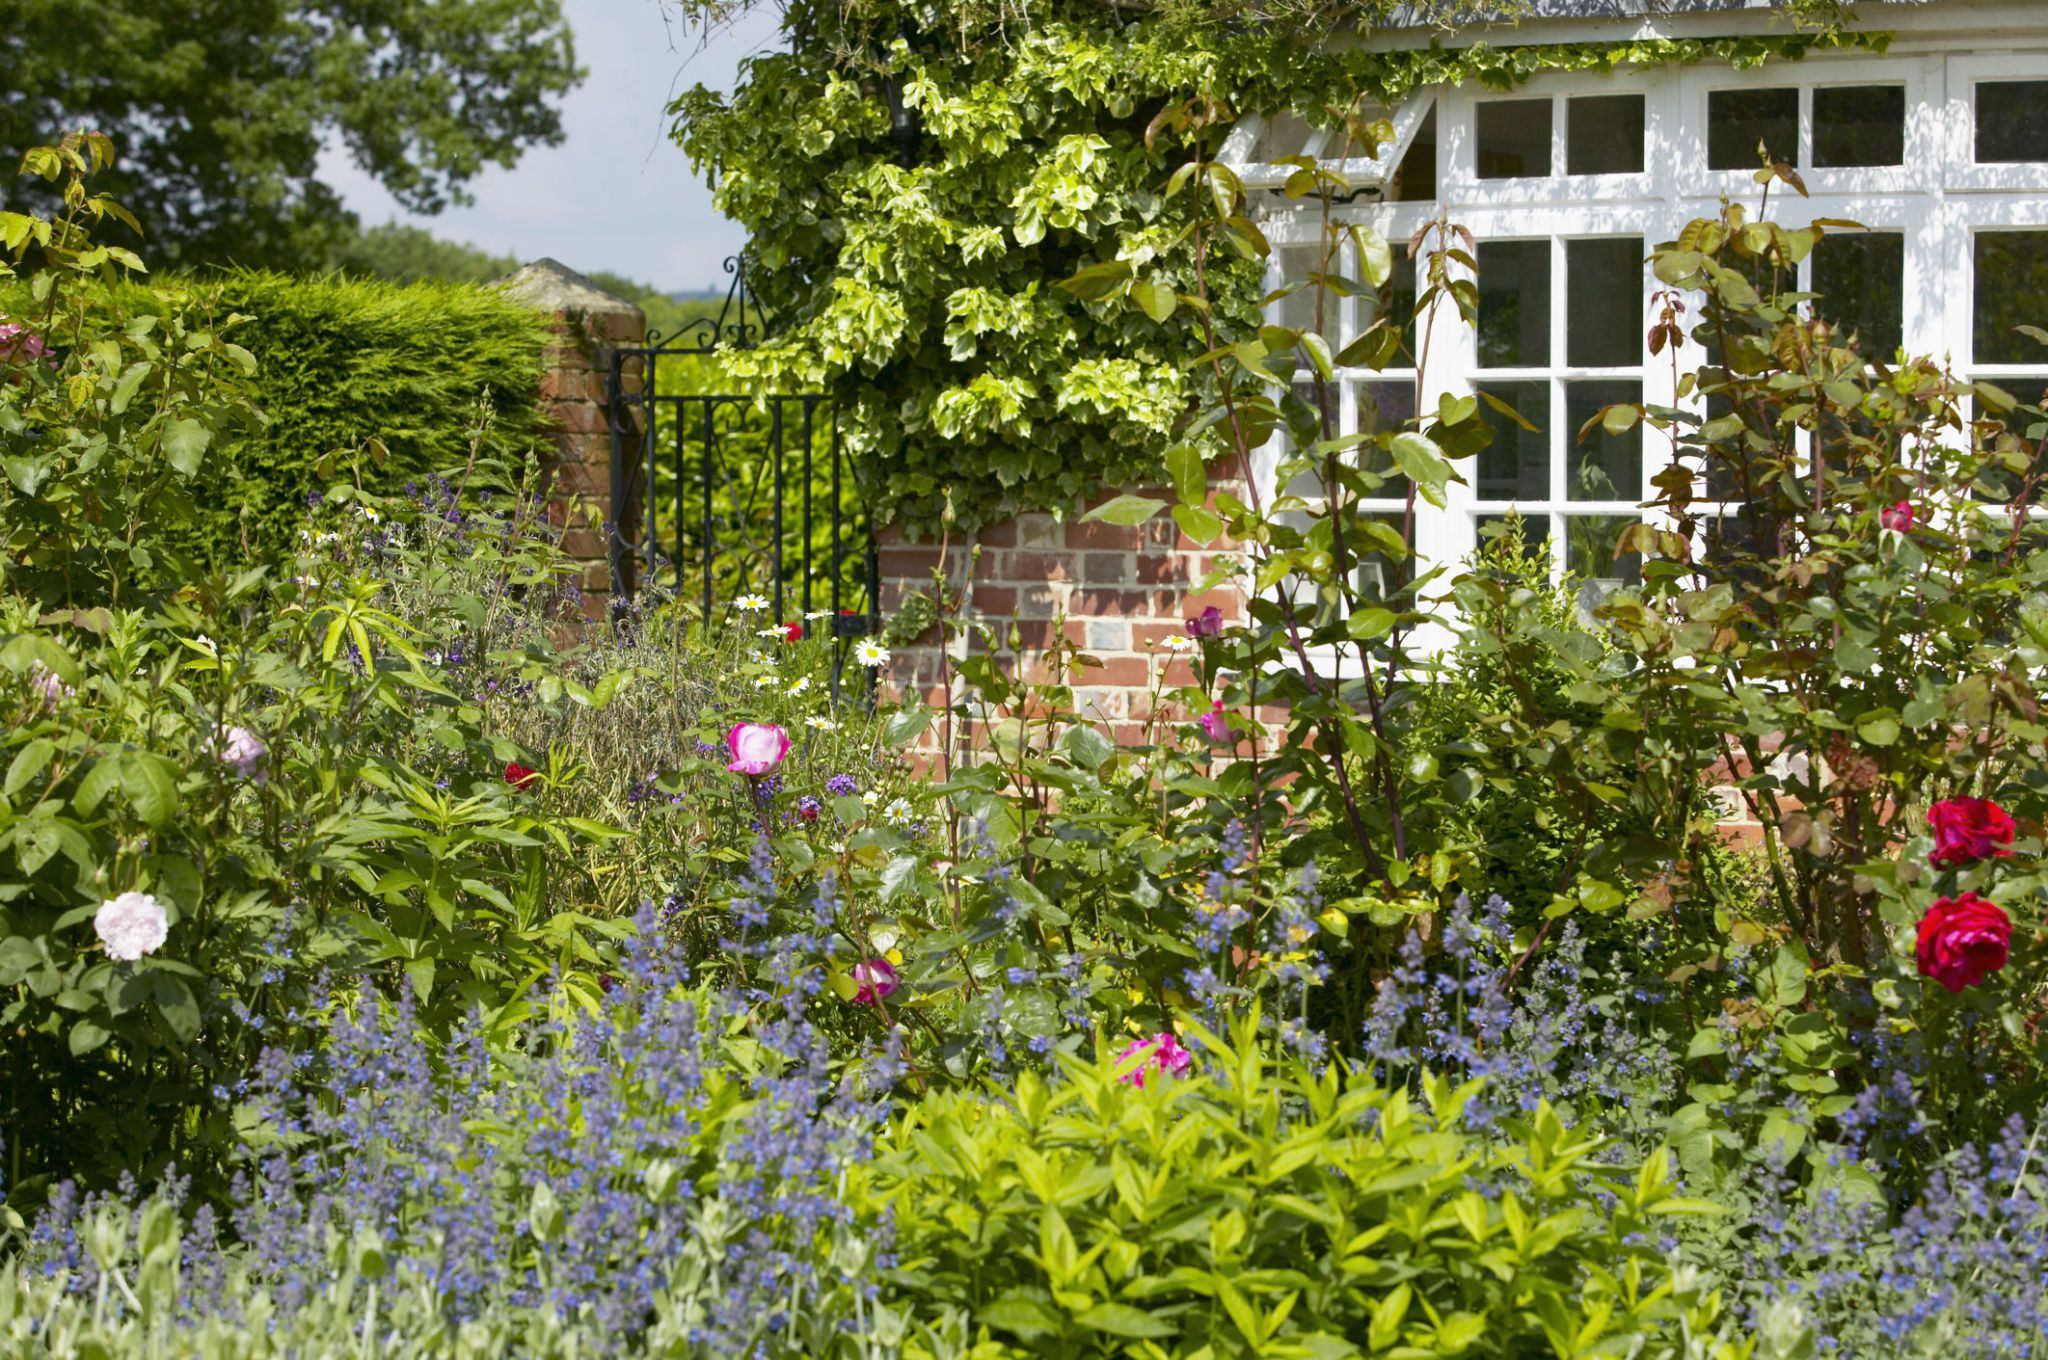 cottage gardens border infront of house with view